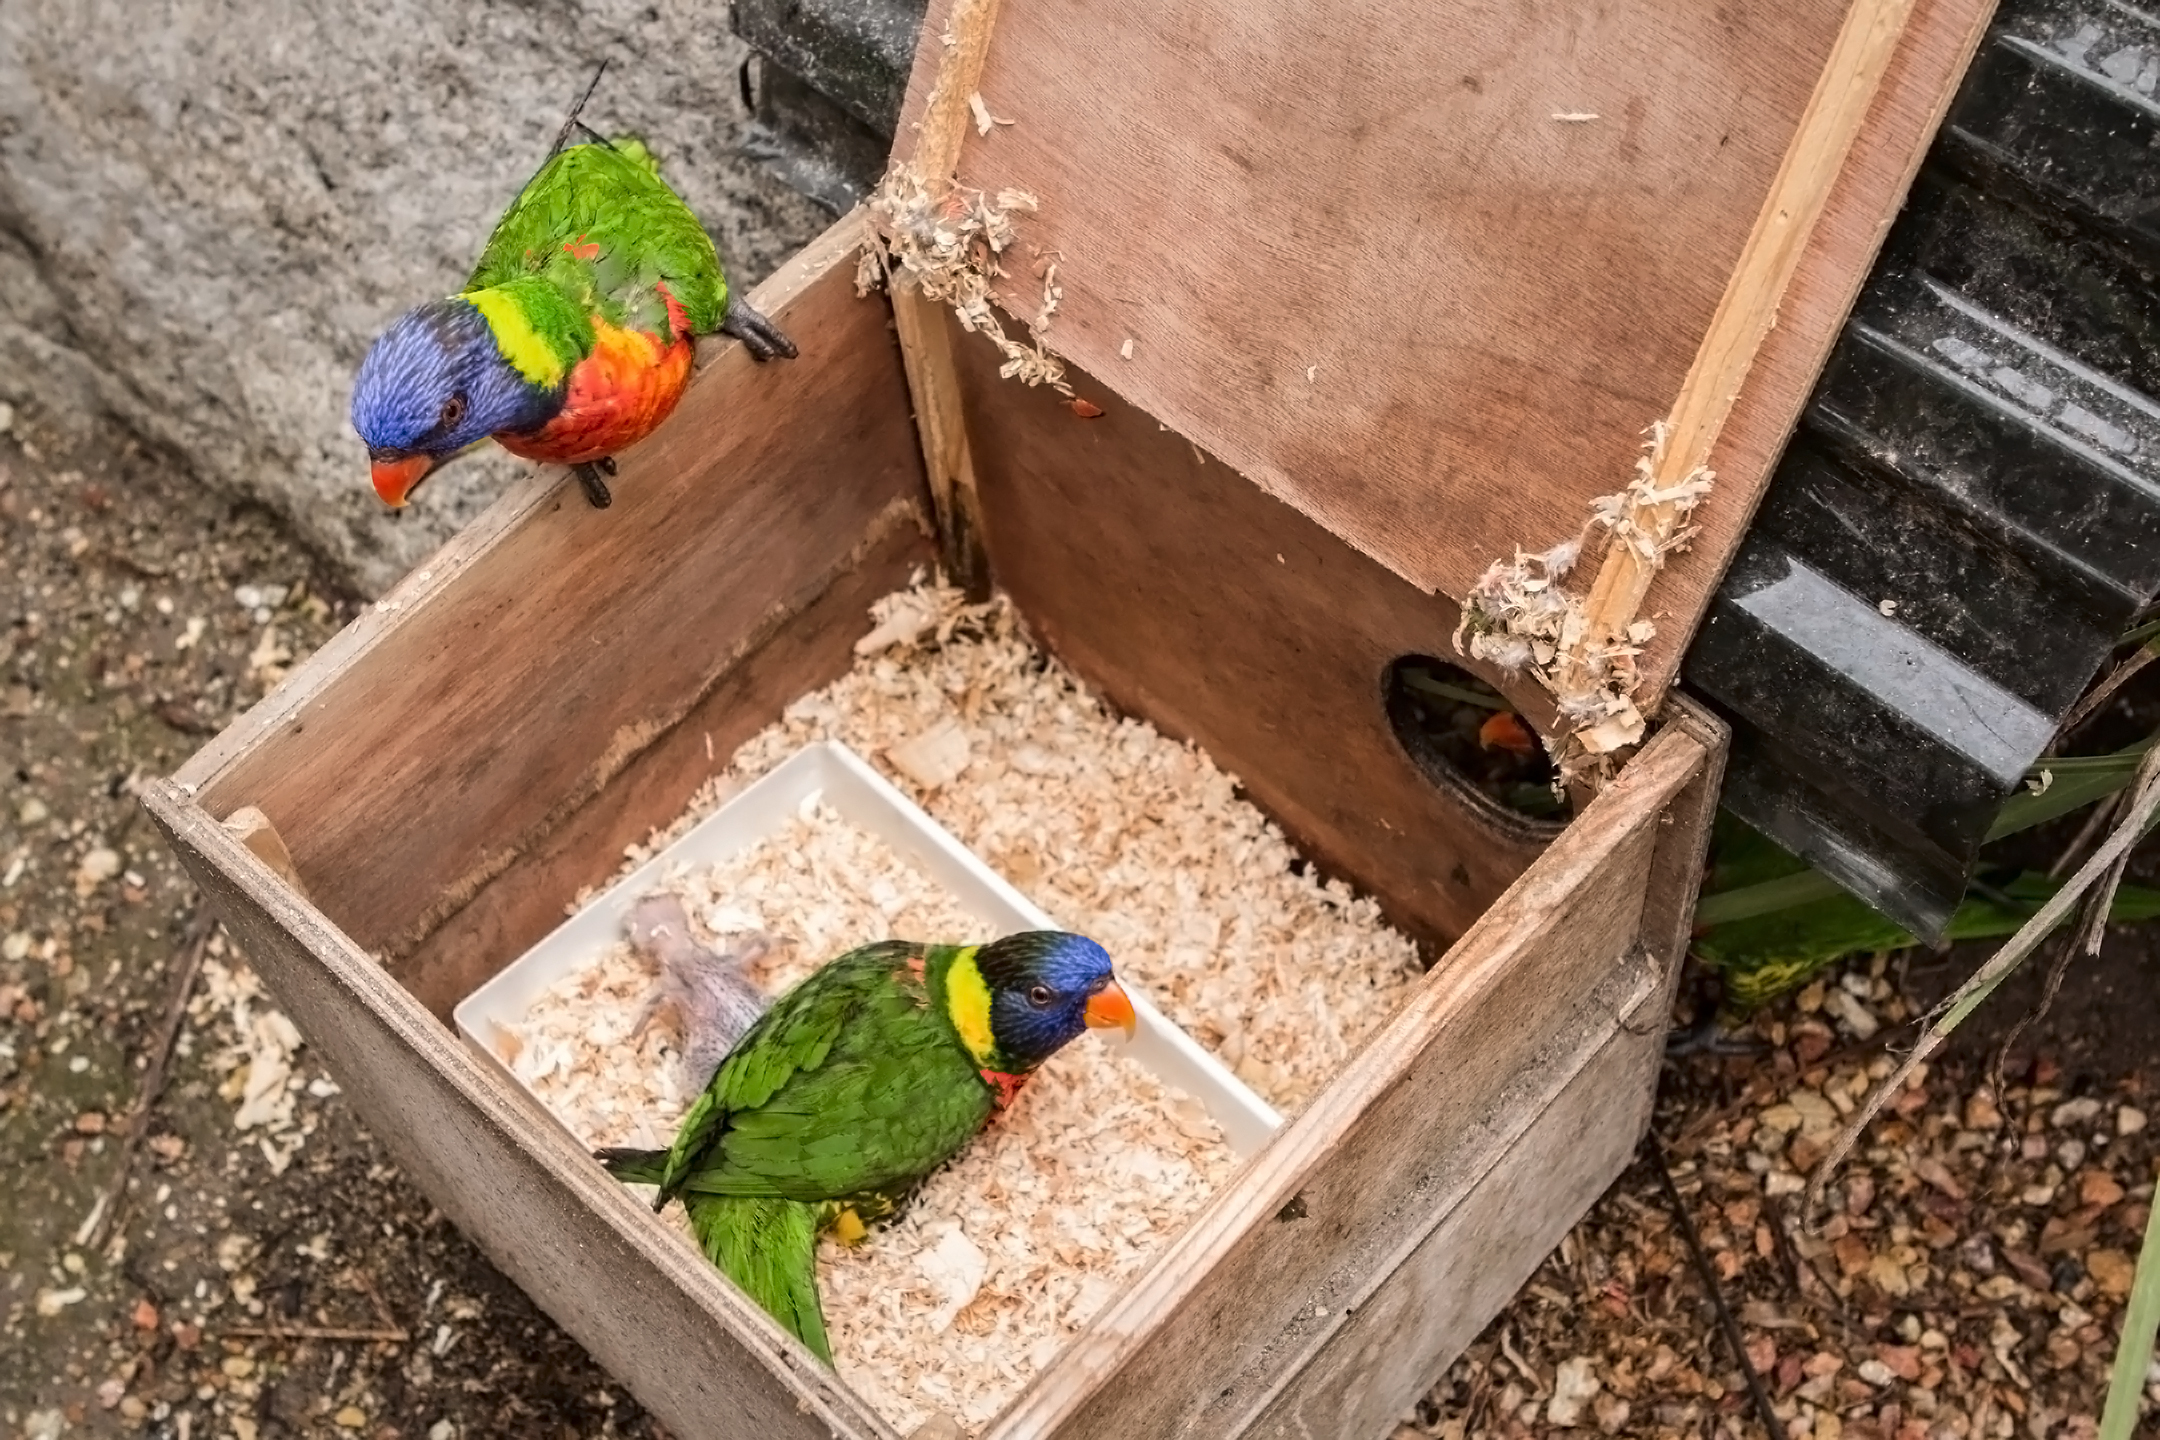 Lorikeets in nesting box